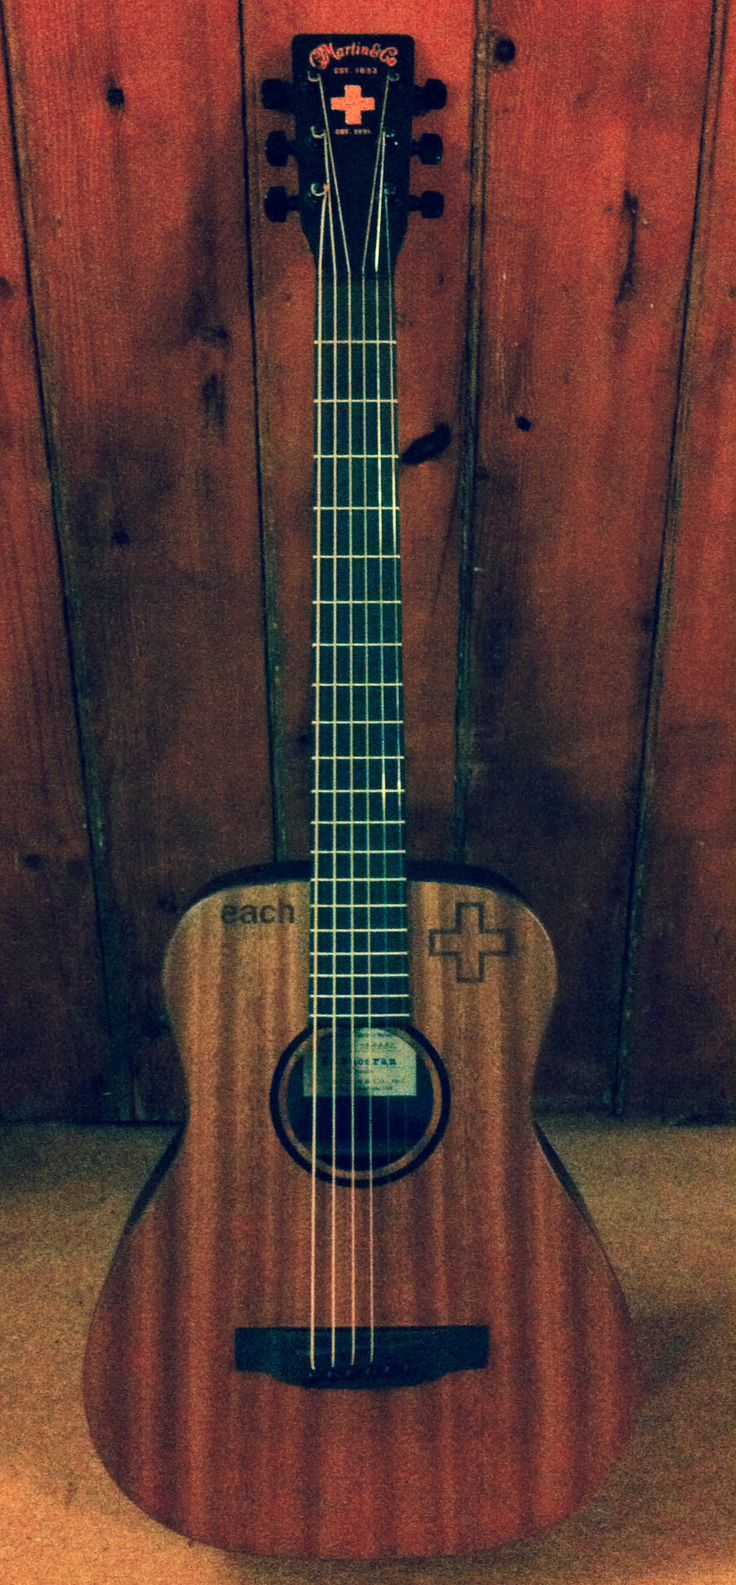 Here it is!  The new Ed Sheeran Little Martin acoustic guitar.  Get yours fast as stocks are limited.    http://www.guitarbitz.com/guitars-c48/acoustic-guitars-c49/martin-guitars-lx1e-ed-sheeran-little-martin-electro-p2247